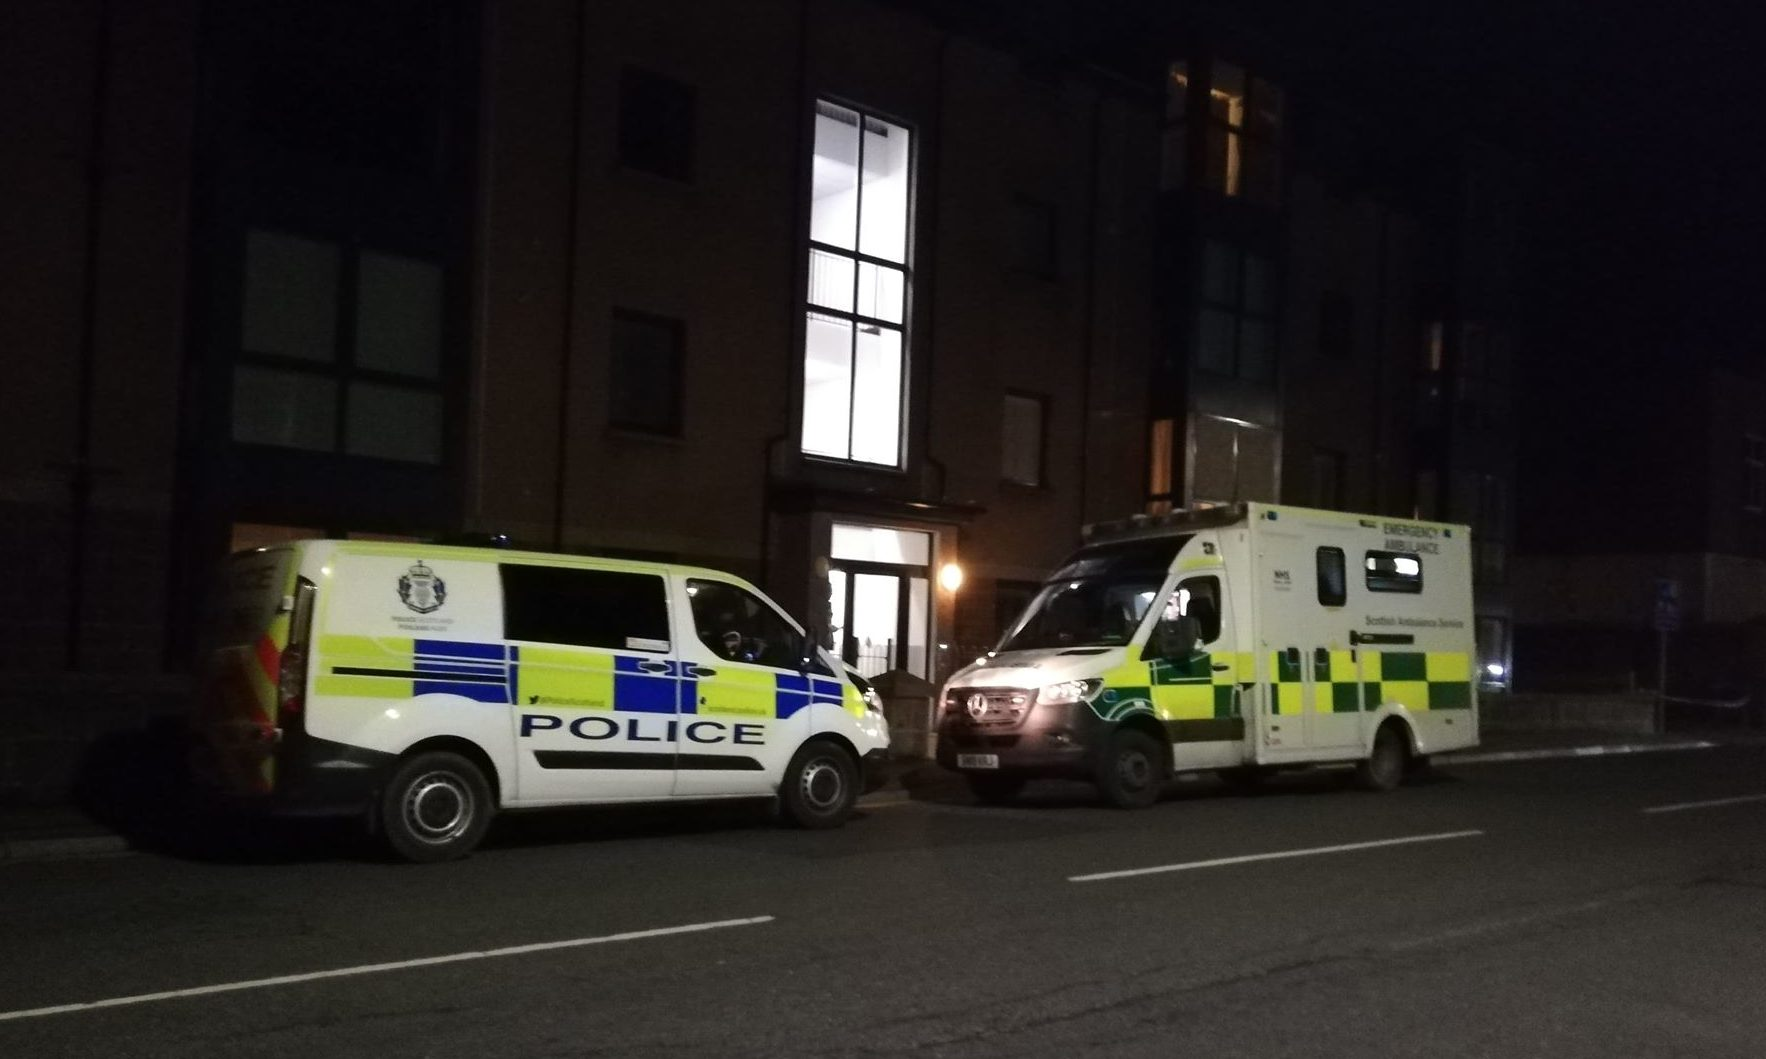 Police and ambulance crews on site in Peterhead.